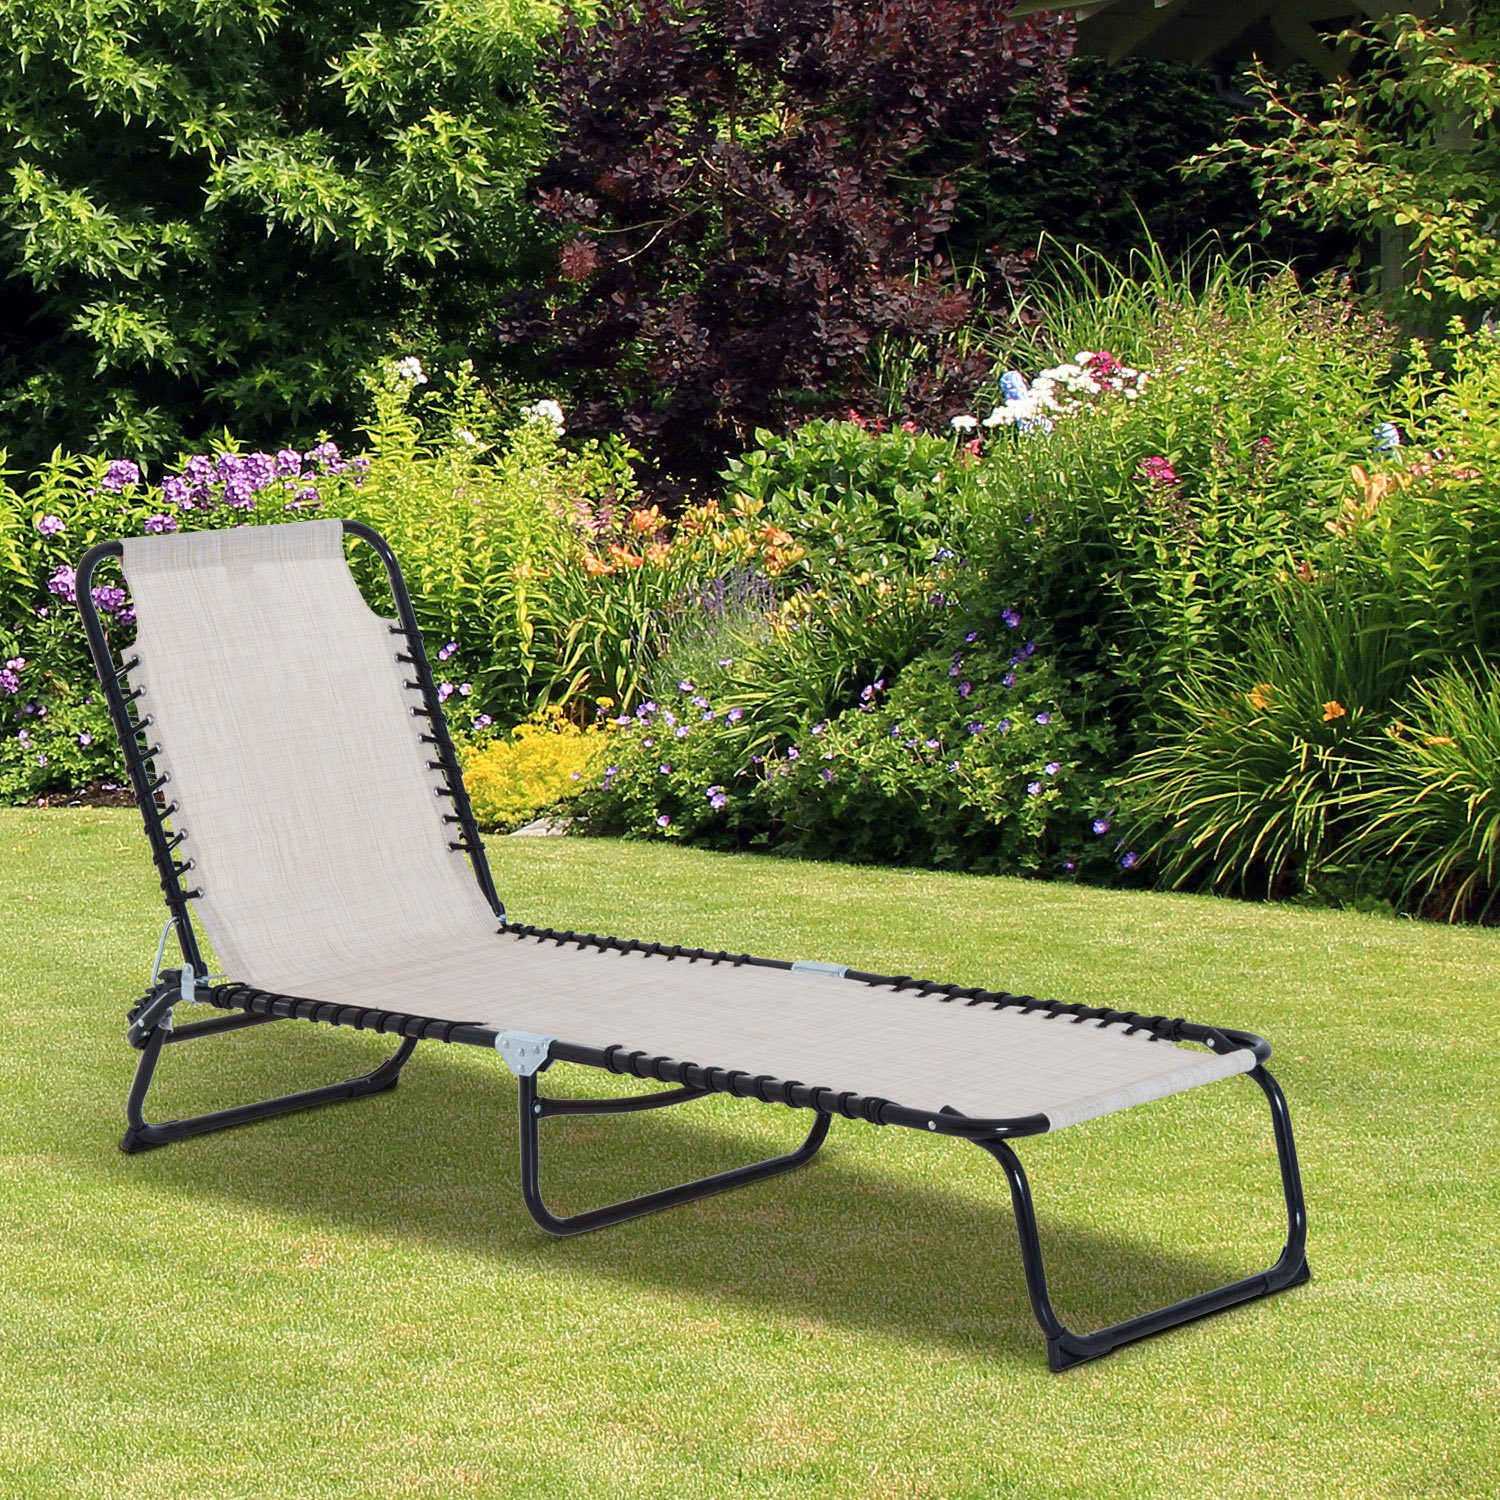 Outsunny 3-Position Reclining Beach Chair Chaise Lounge Folding Chair - Cream White by Outsunny (Image #2)